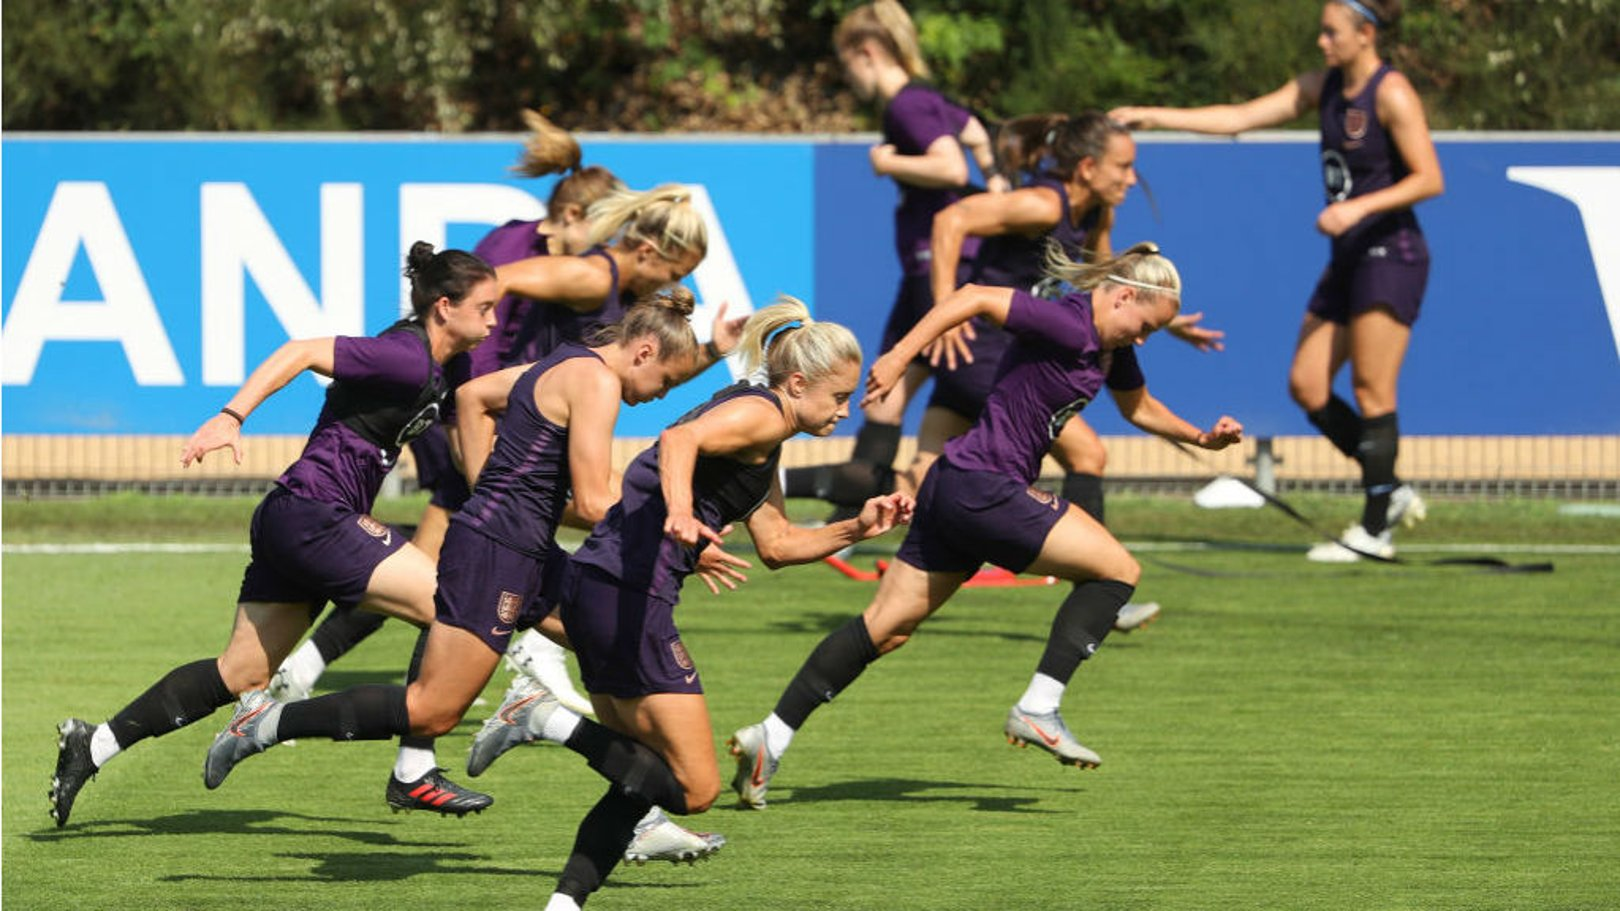 UP AND AT 'EM: England skipper Steph Houghton and her colleagues are put through their paces as the Lionesses gear up for Tuesday's World Cup semi-final against the United States